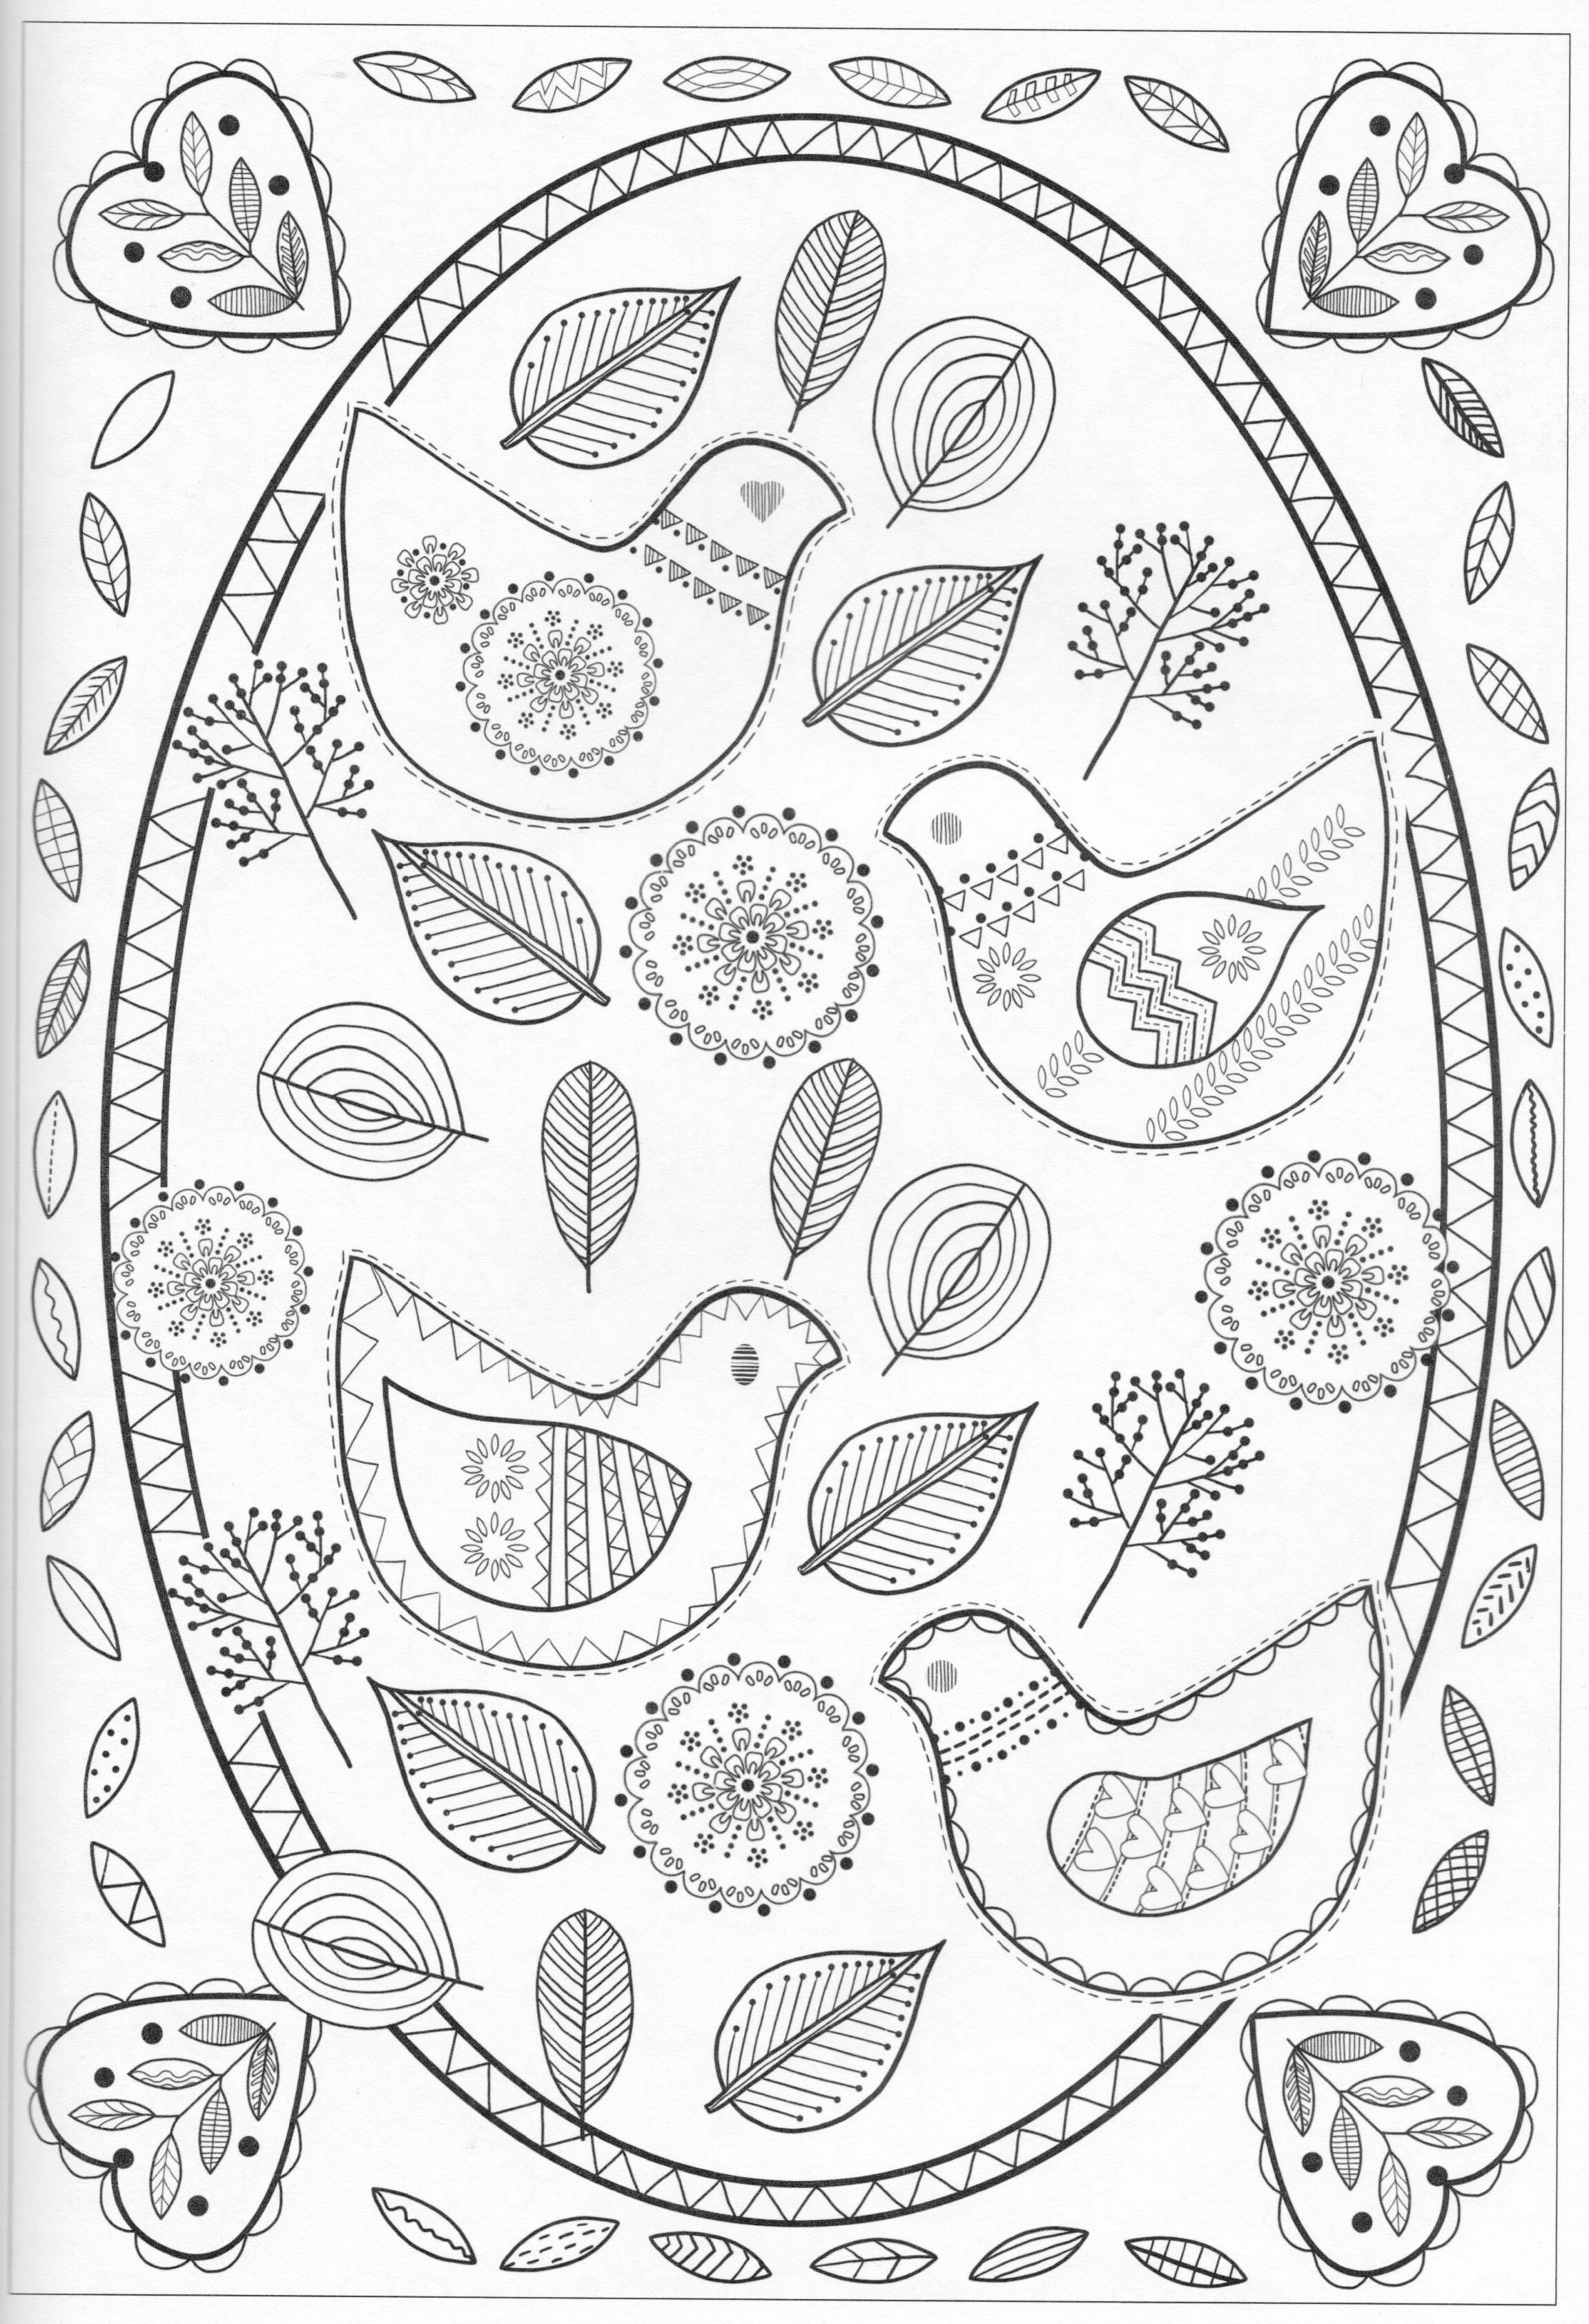 Colored Pencil Coloring Pages  Printable 19d - Save it to your computer